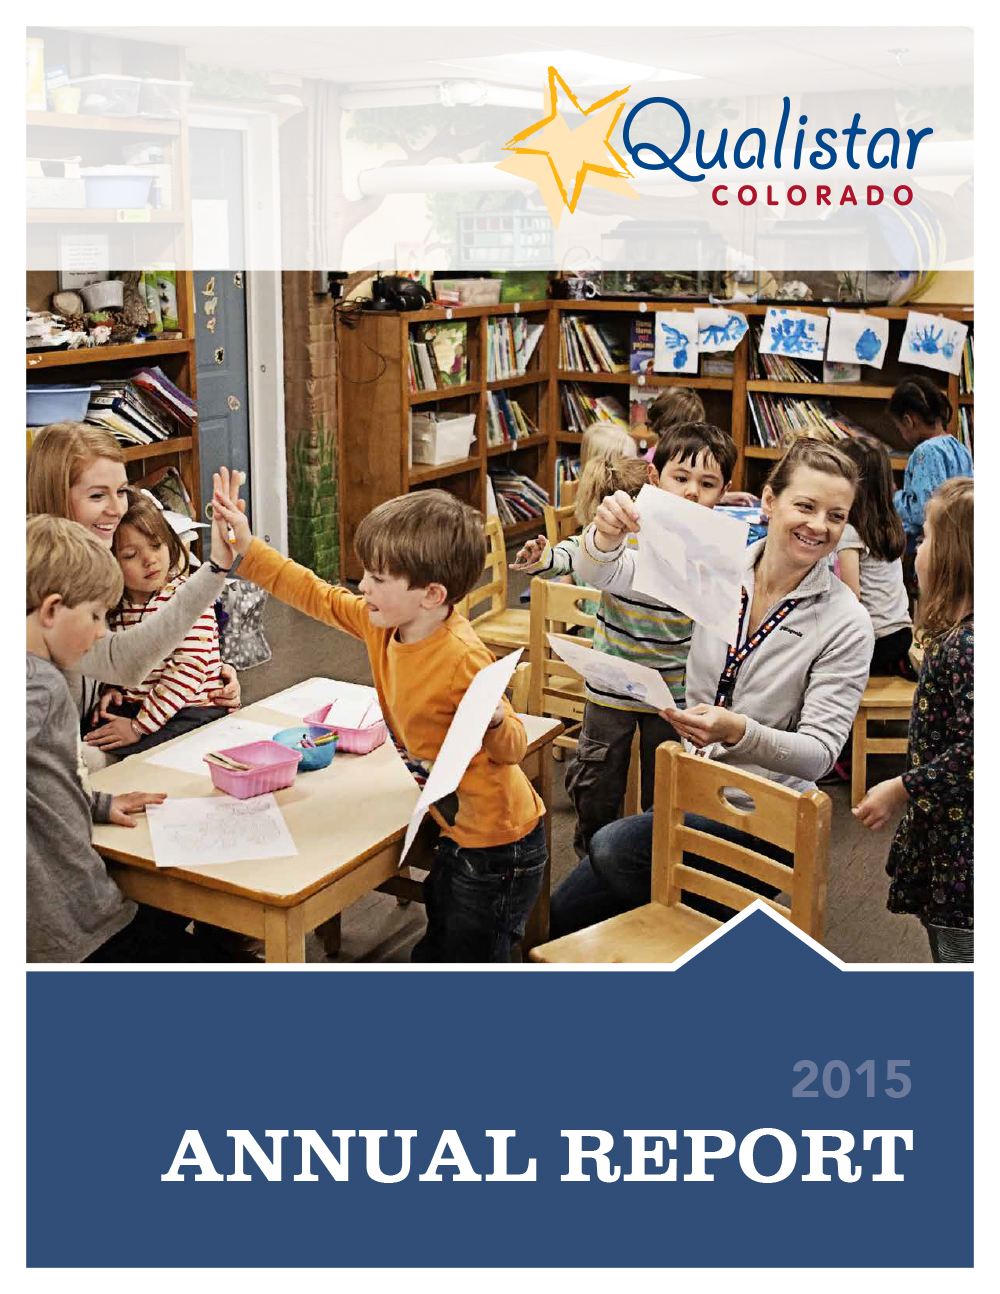 Qualistar Annual Report cover